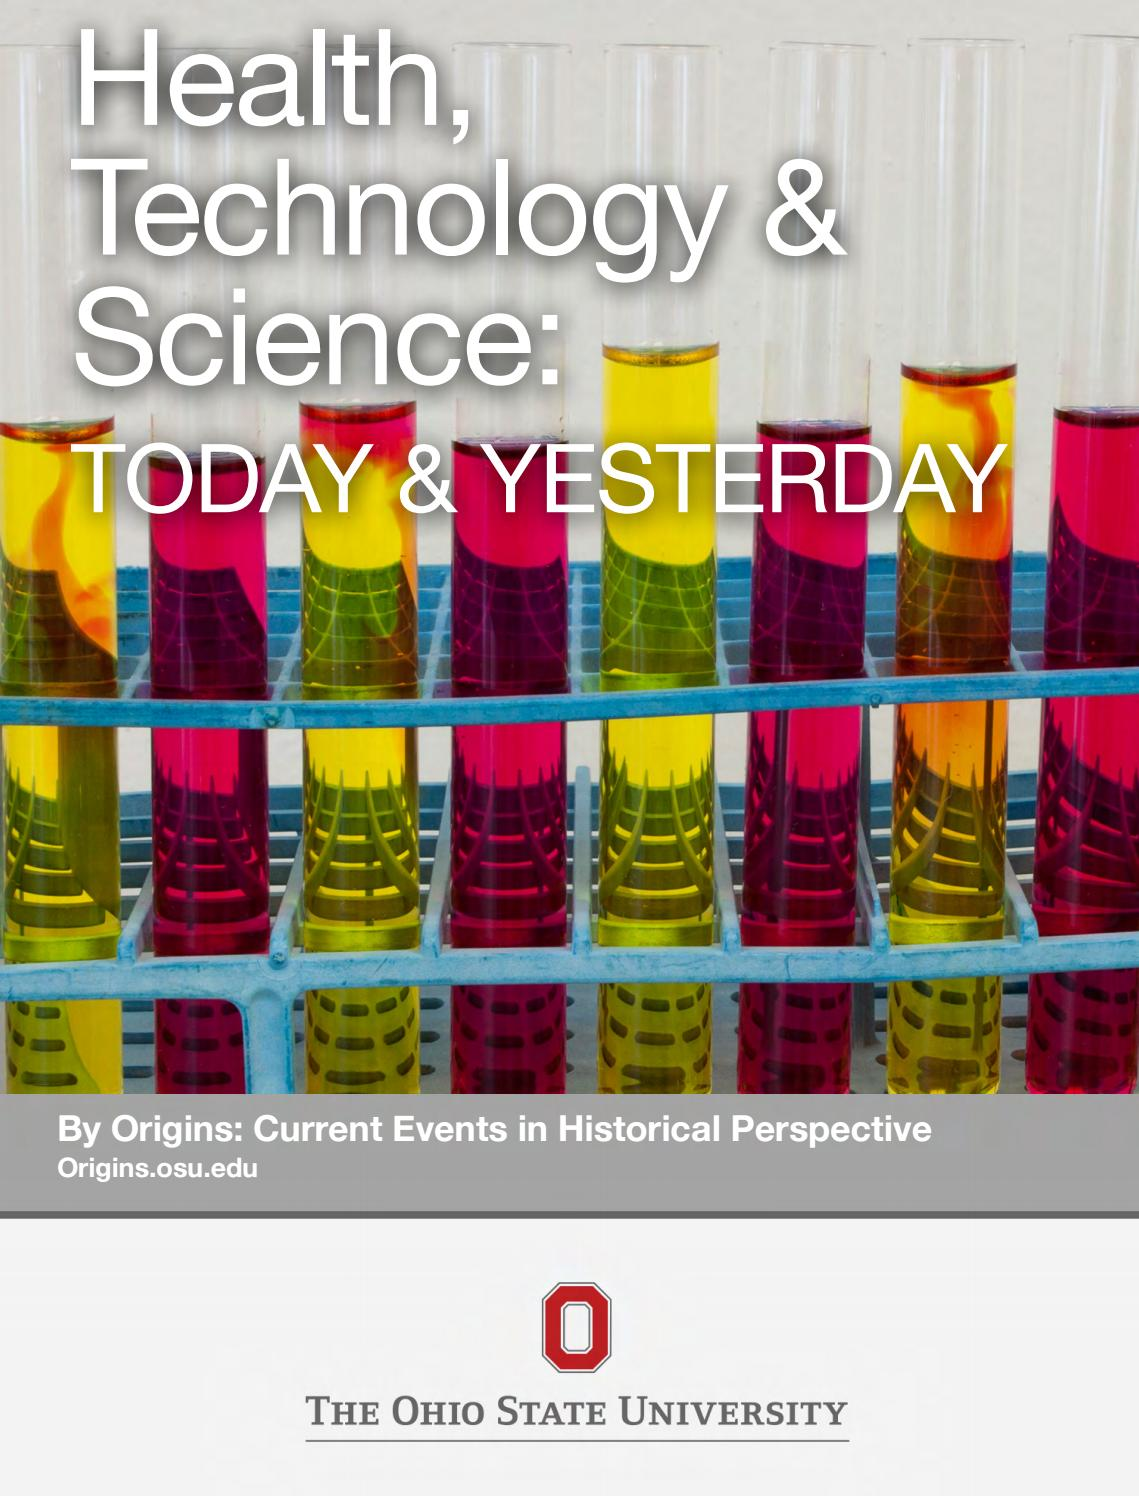 Health Technology Science Today Yesterday By Department Of Singapore Wings Time Show 1940 Voucher History At Ohio State Issuu